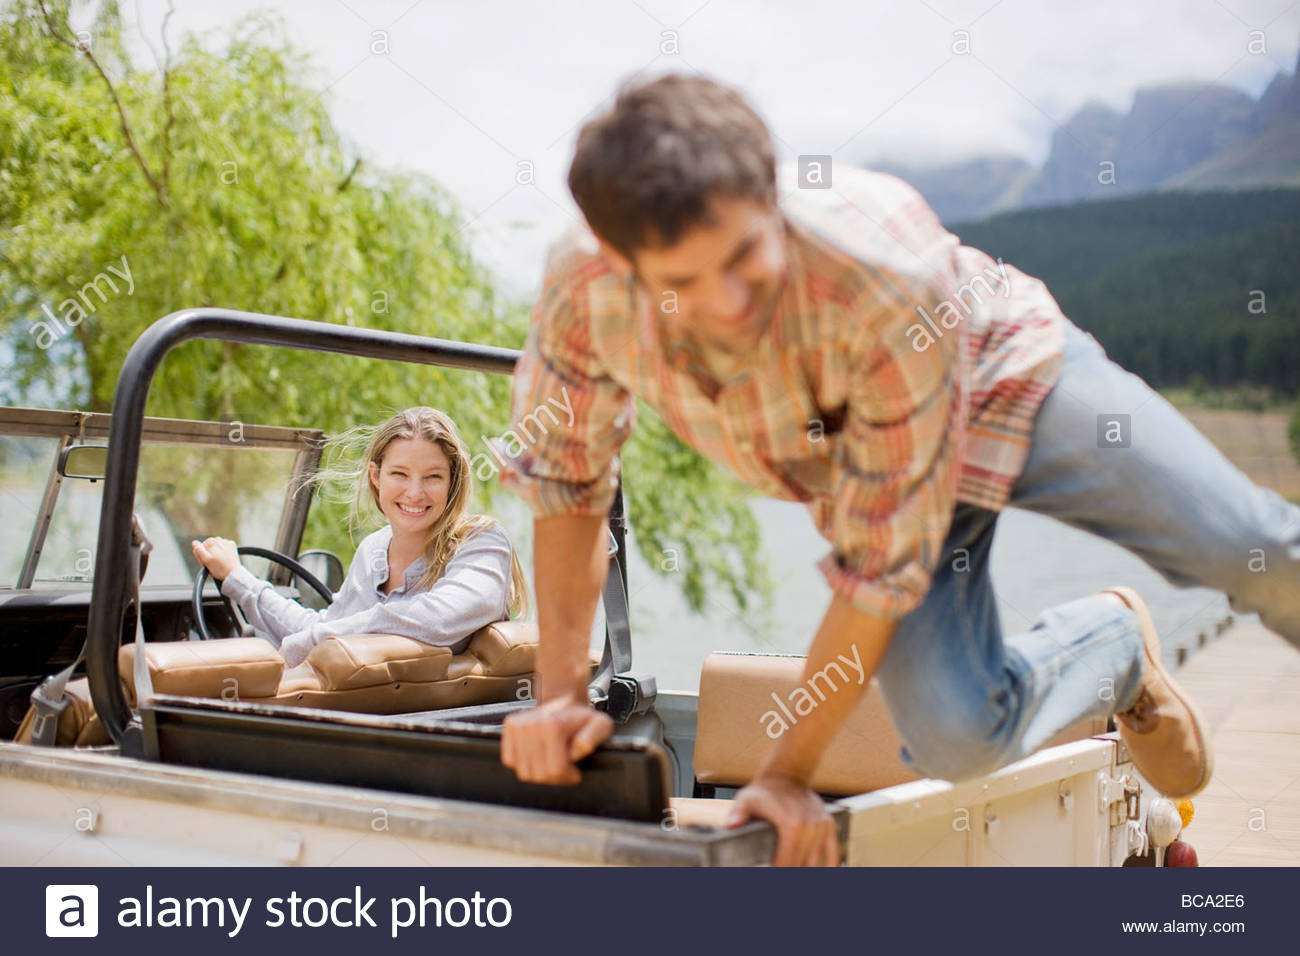 Man jumping out of back of jeep - Stock Image